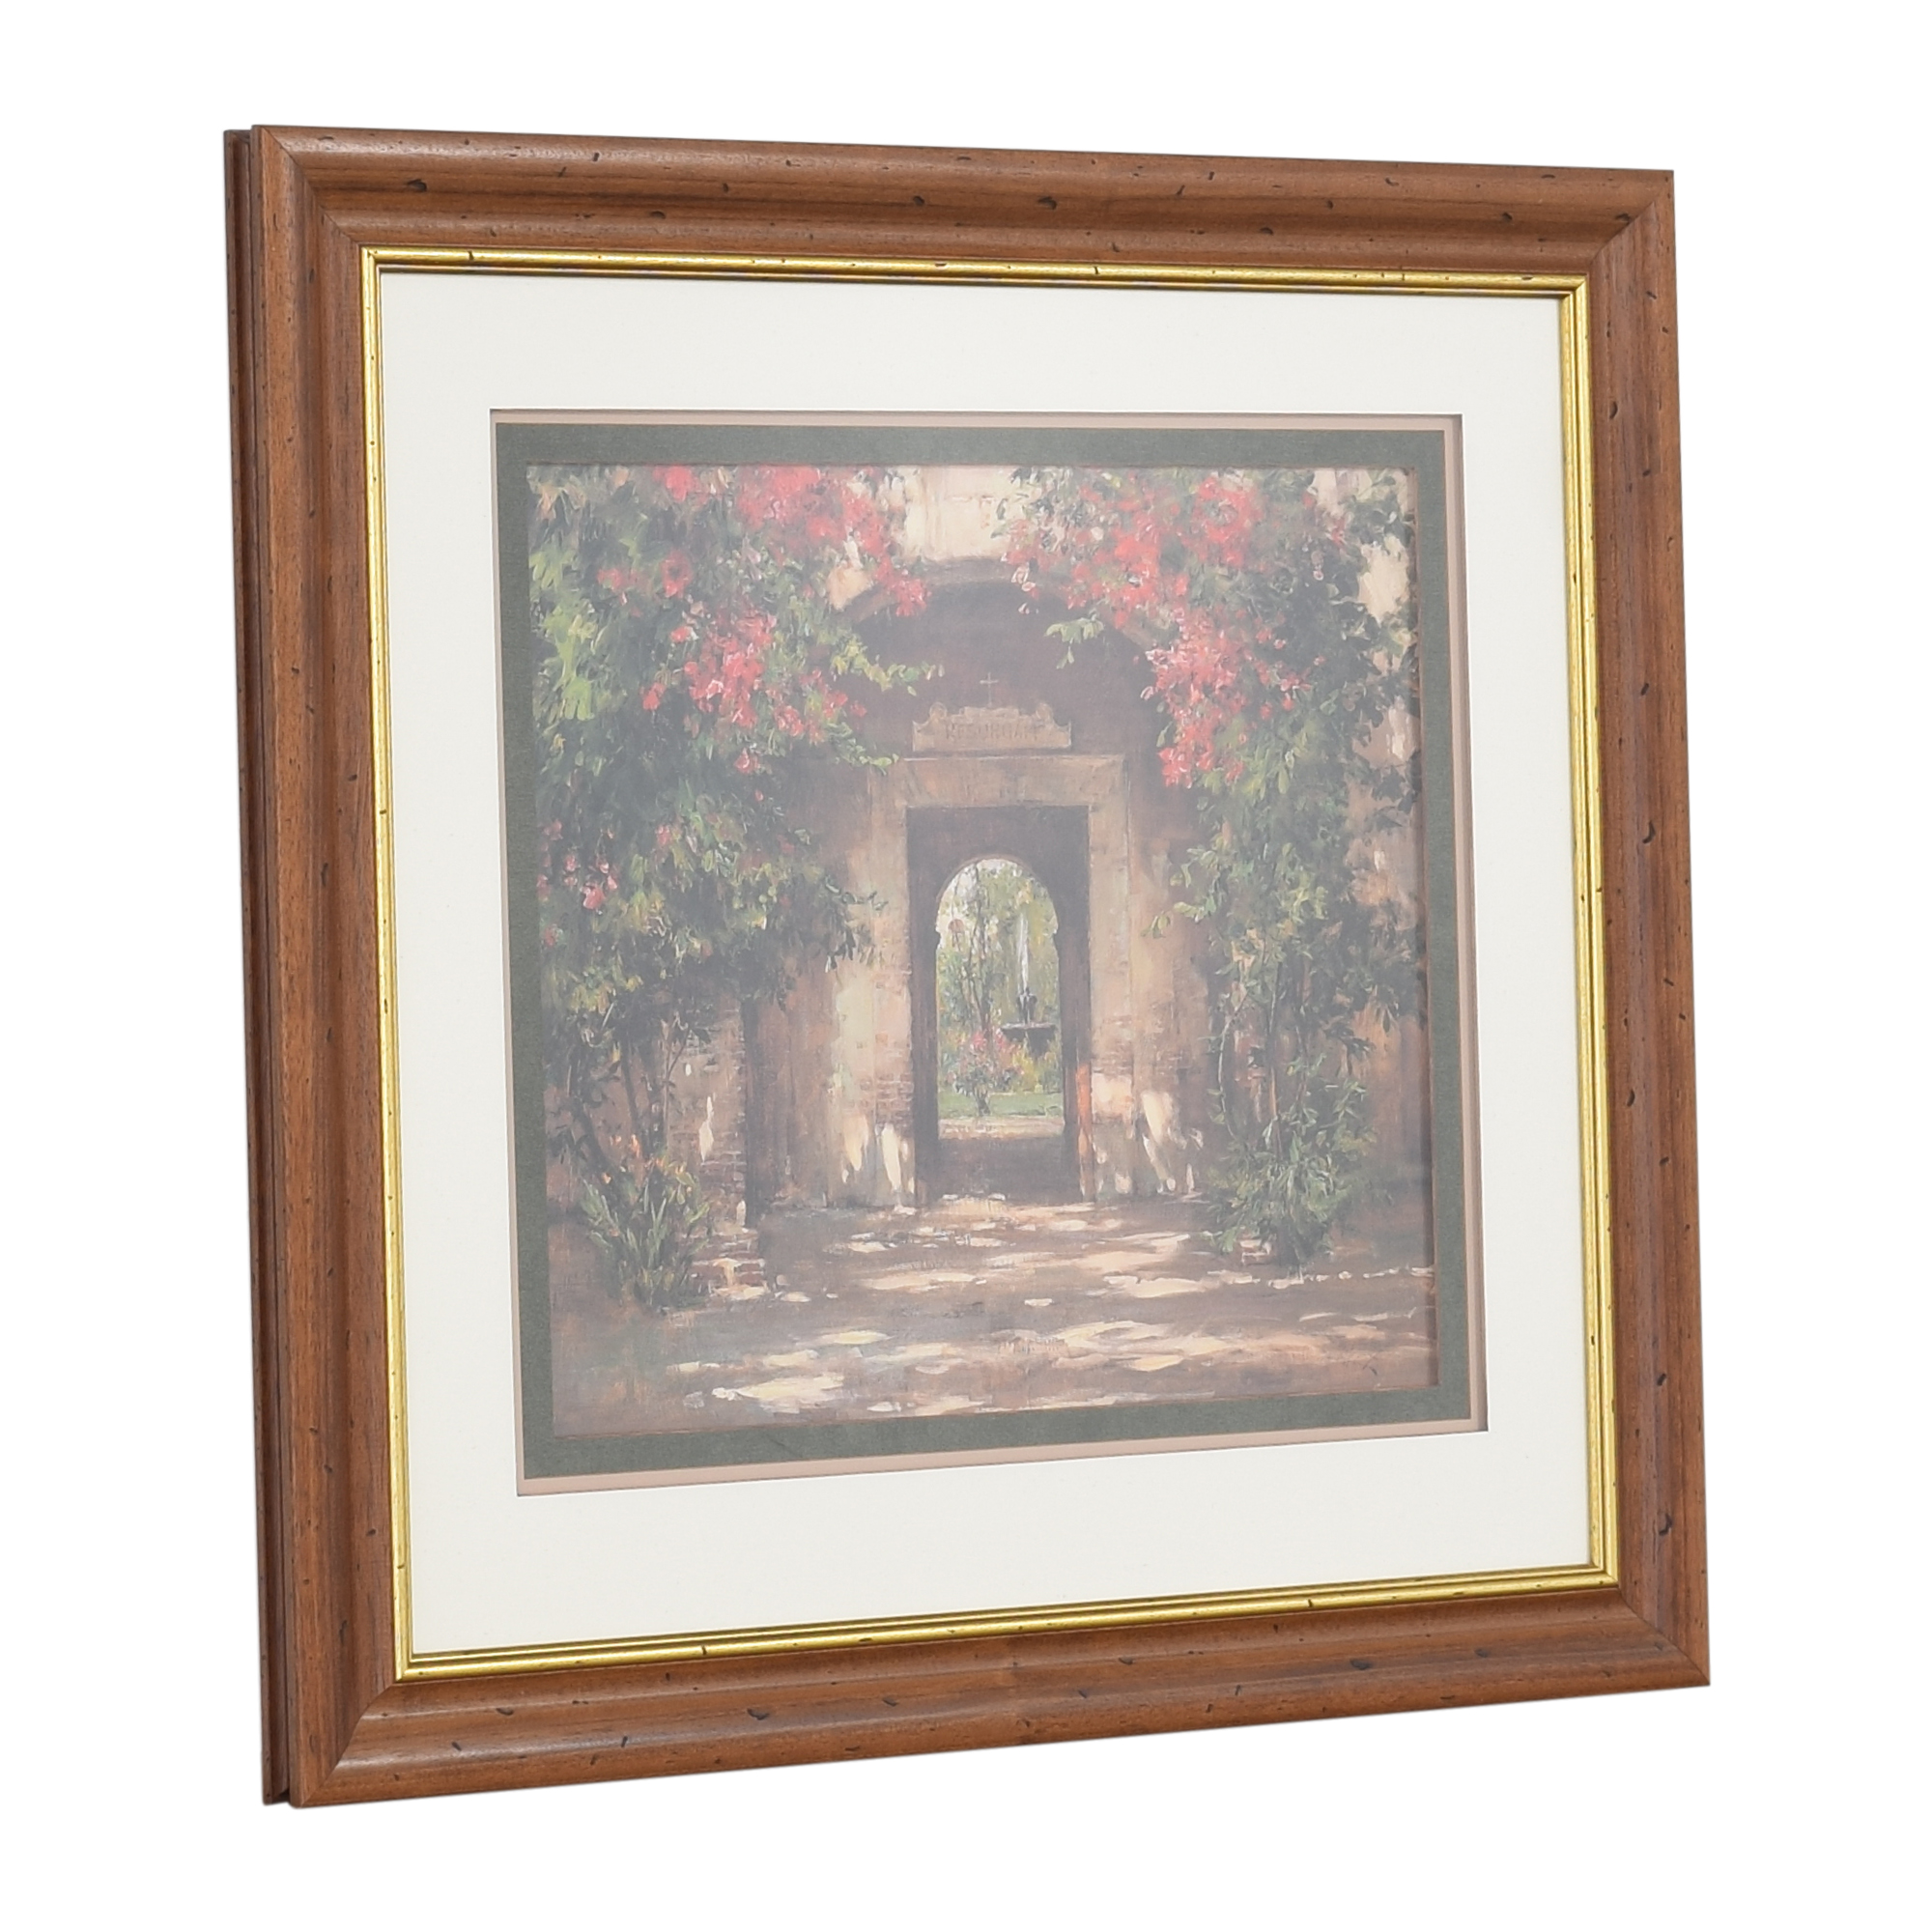 Ethan Allen Ethan Allen Flowered Doorway Wall Art Wall Art